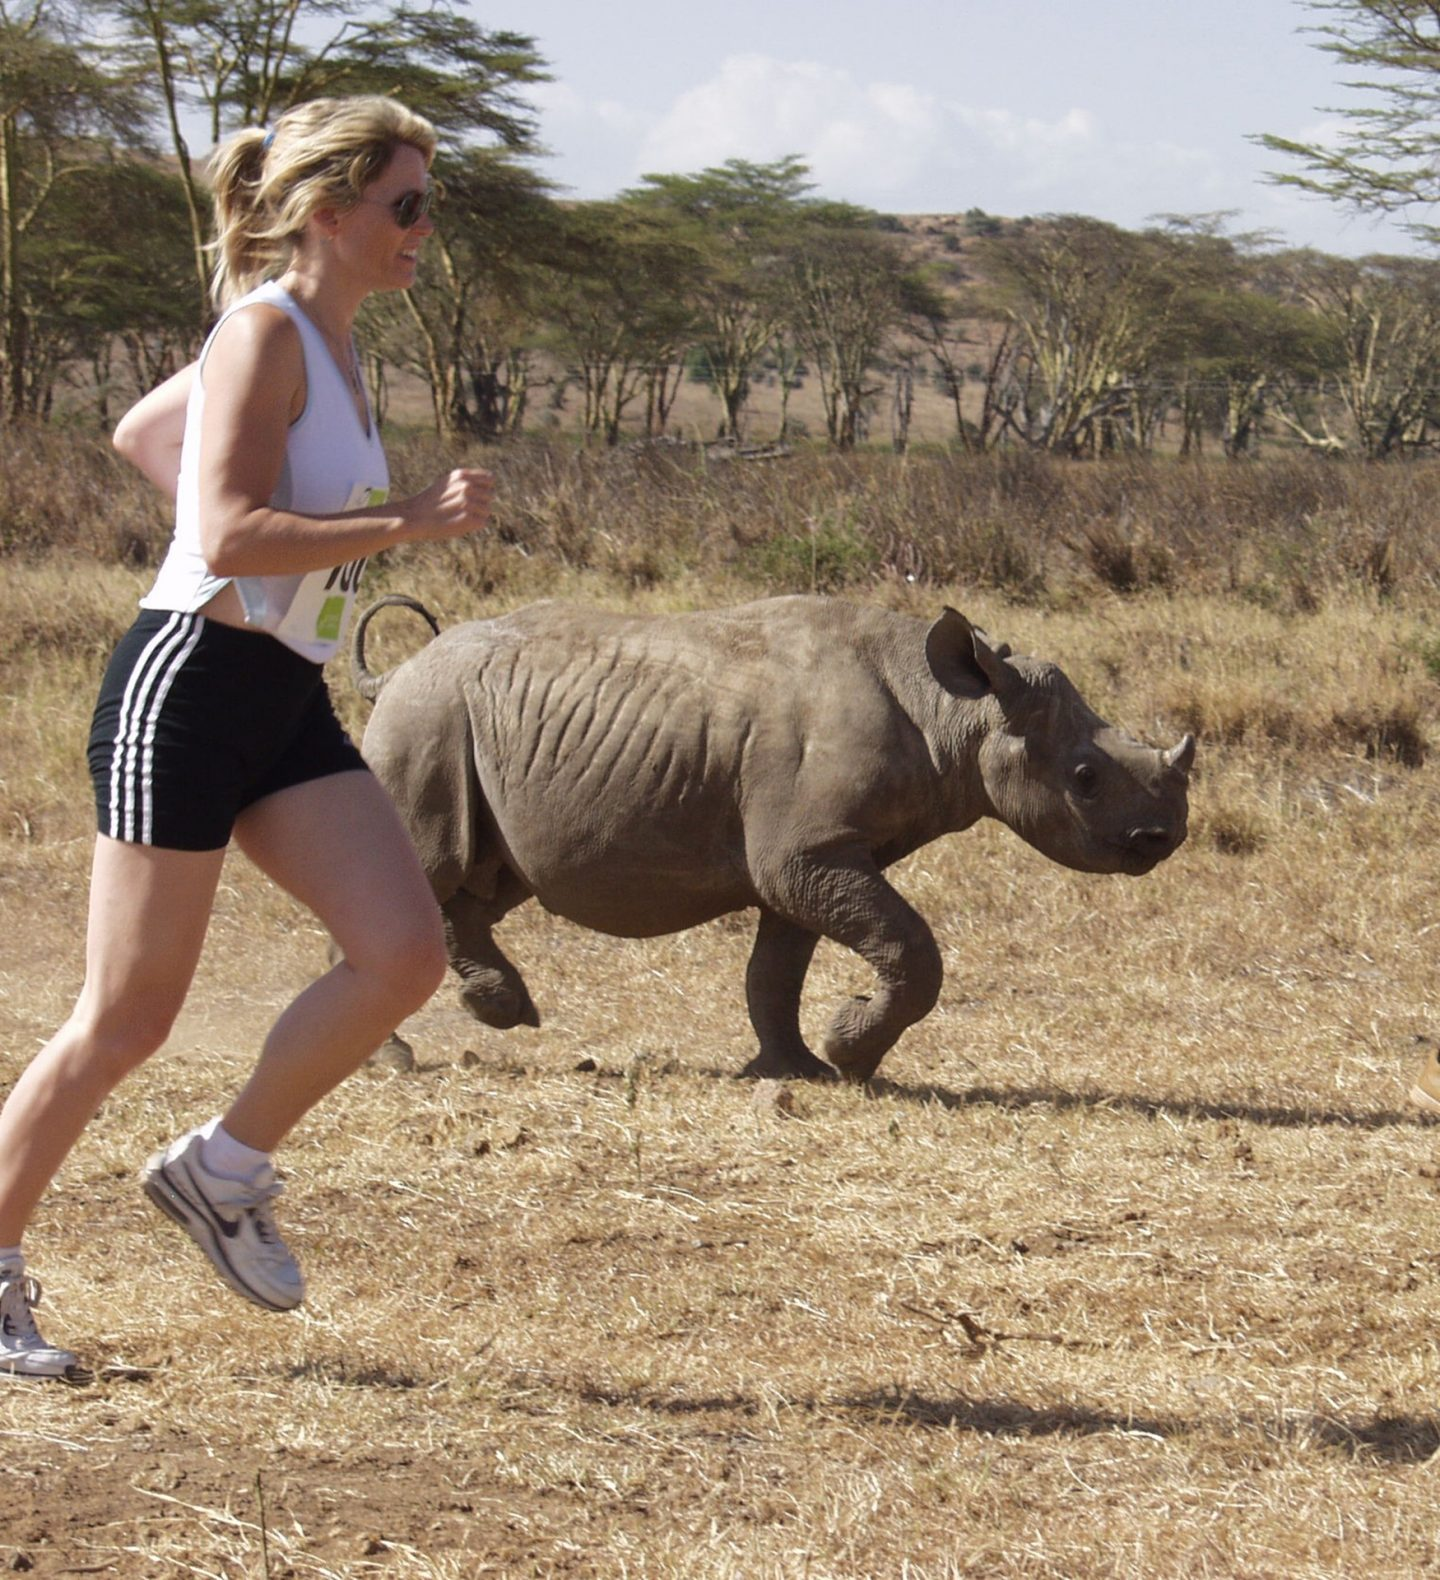 Safaricom Marathon Runner and Rhino